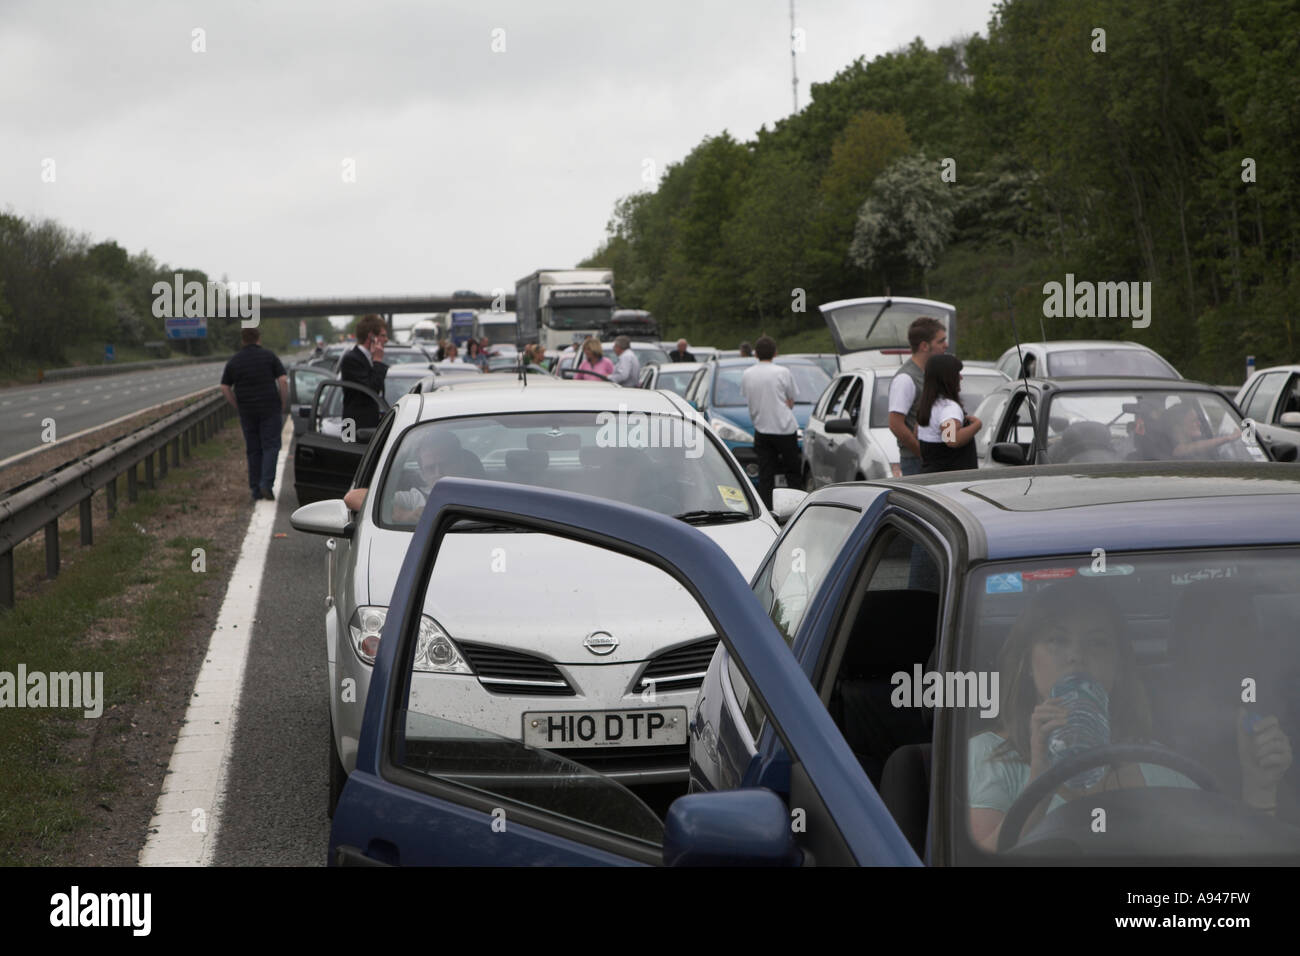 People delayed by large traffic jam following a road